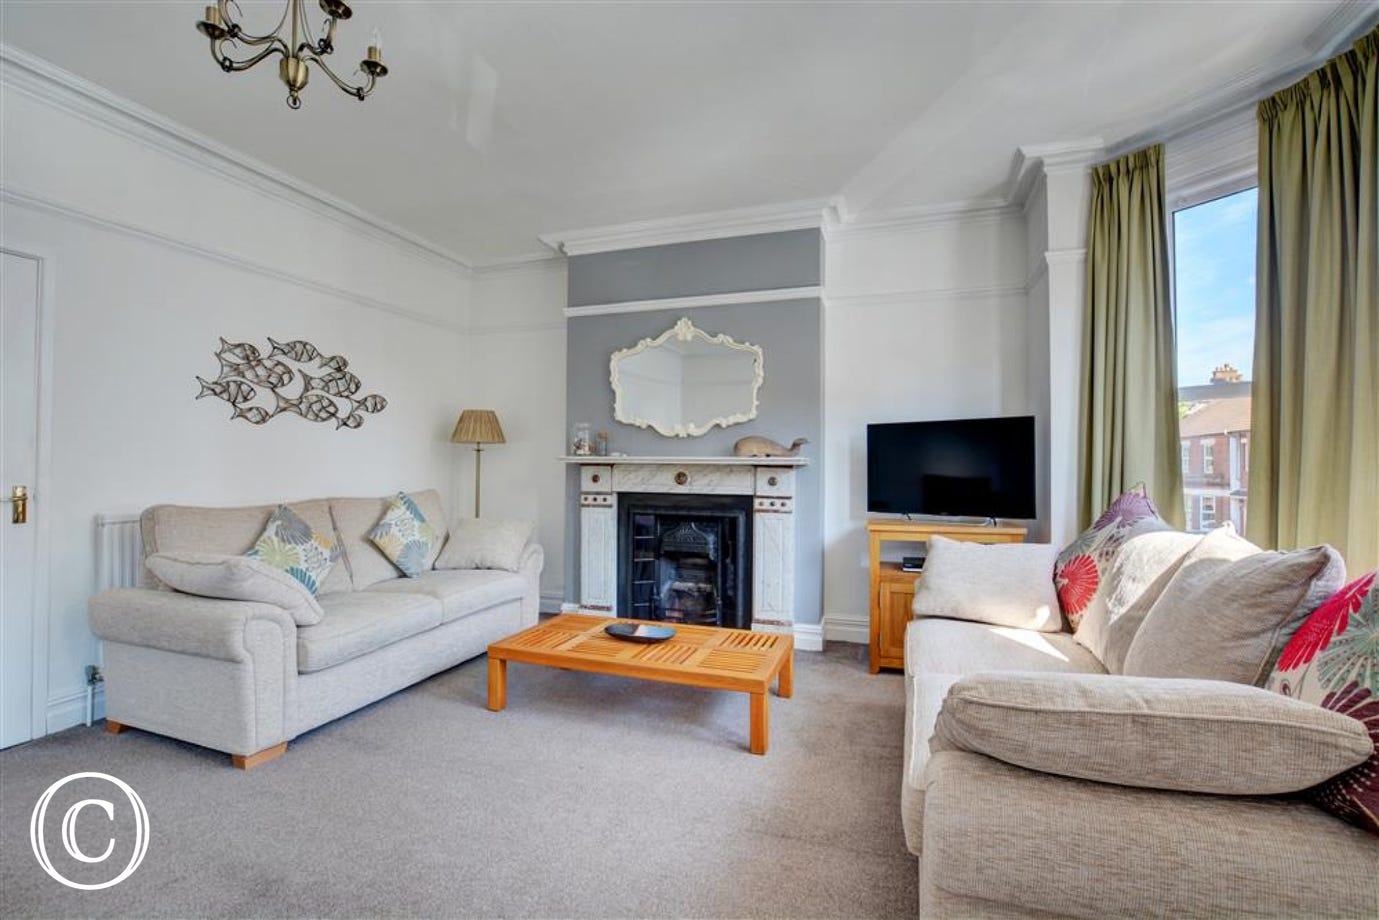 Lovely comfortable sitting room to relax in after a day at the beach